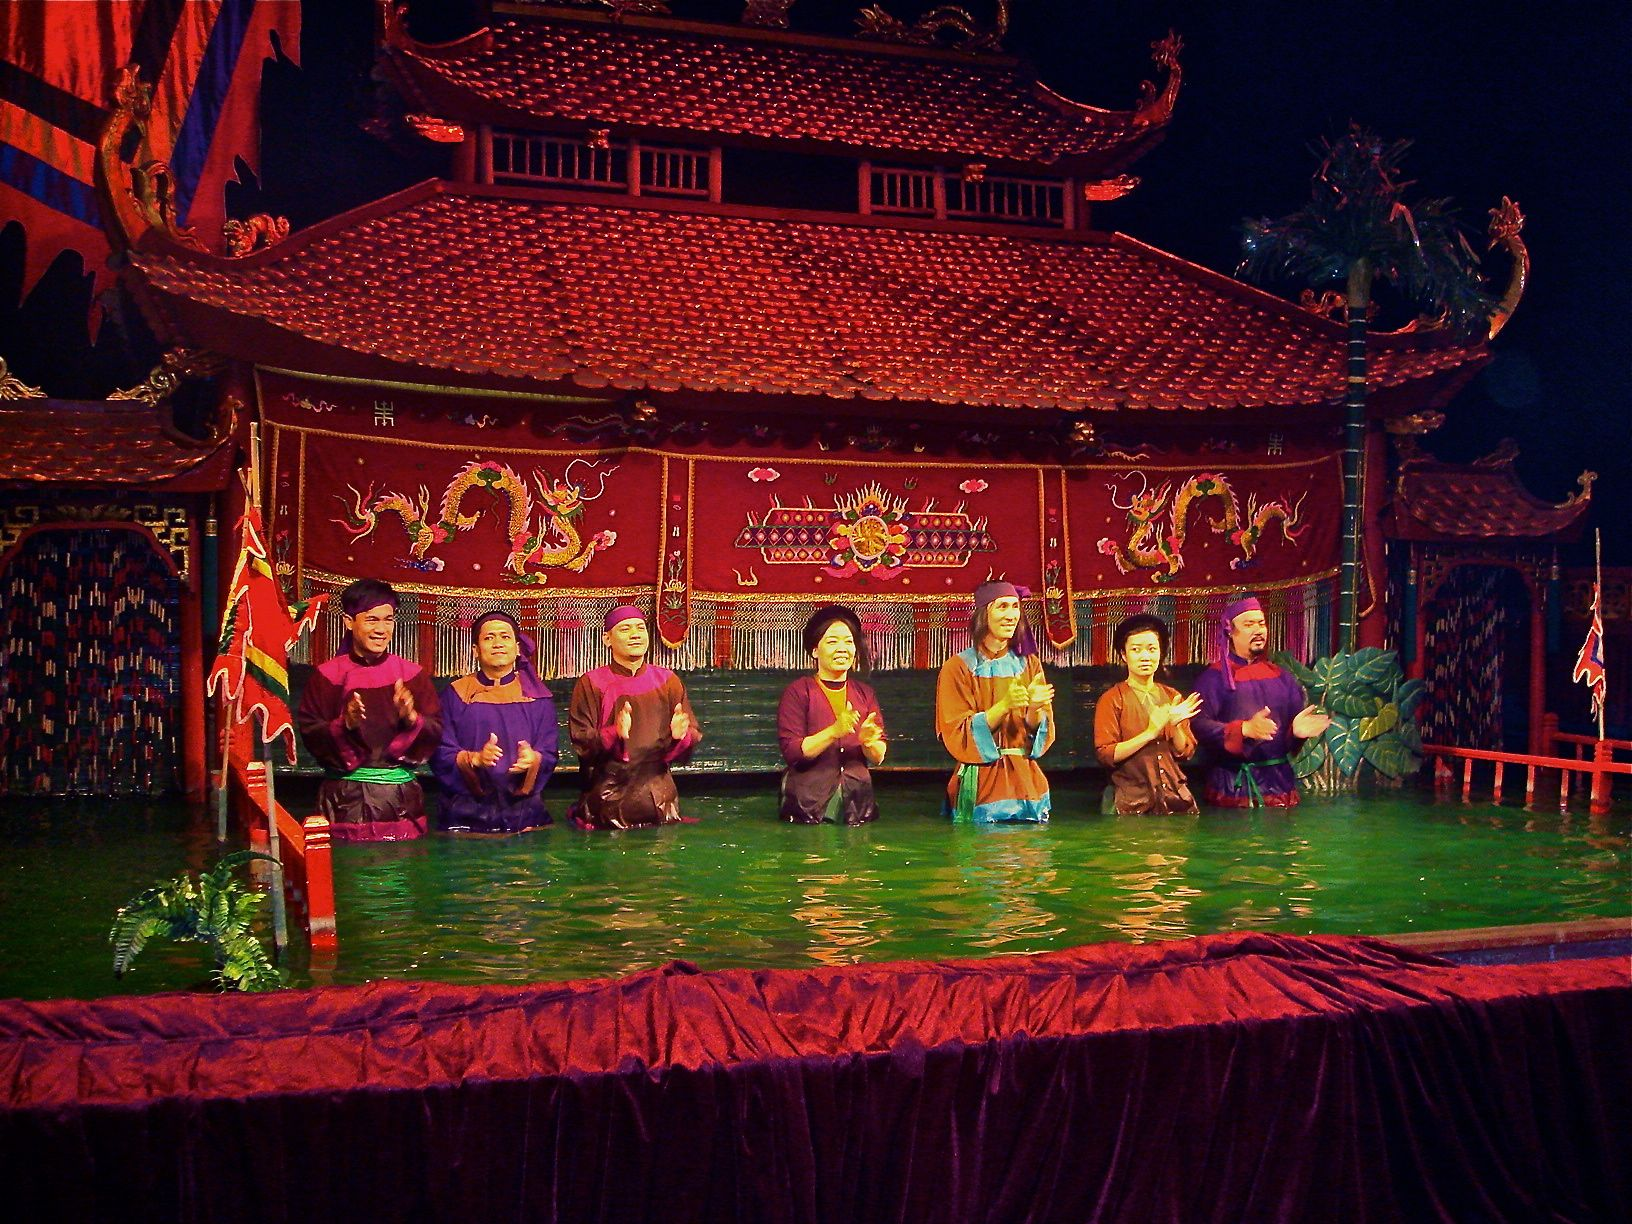 moi roi nuoc vietnamese water puppetry Visit us at: wwwalotripcom/vietnam-video-overview/dao-thuc-folk-water-puppetry-vietnam vietnamese water puppet or roi nuoc is one of the most attractive.